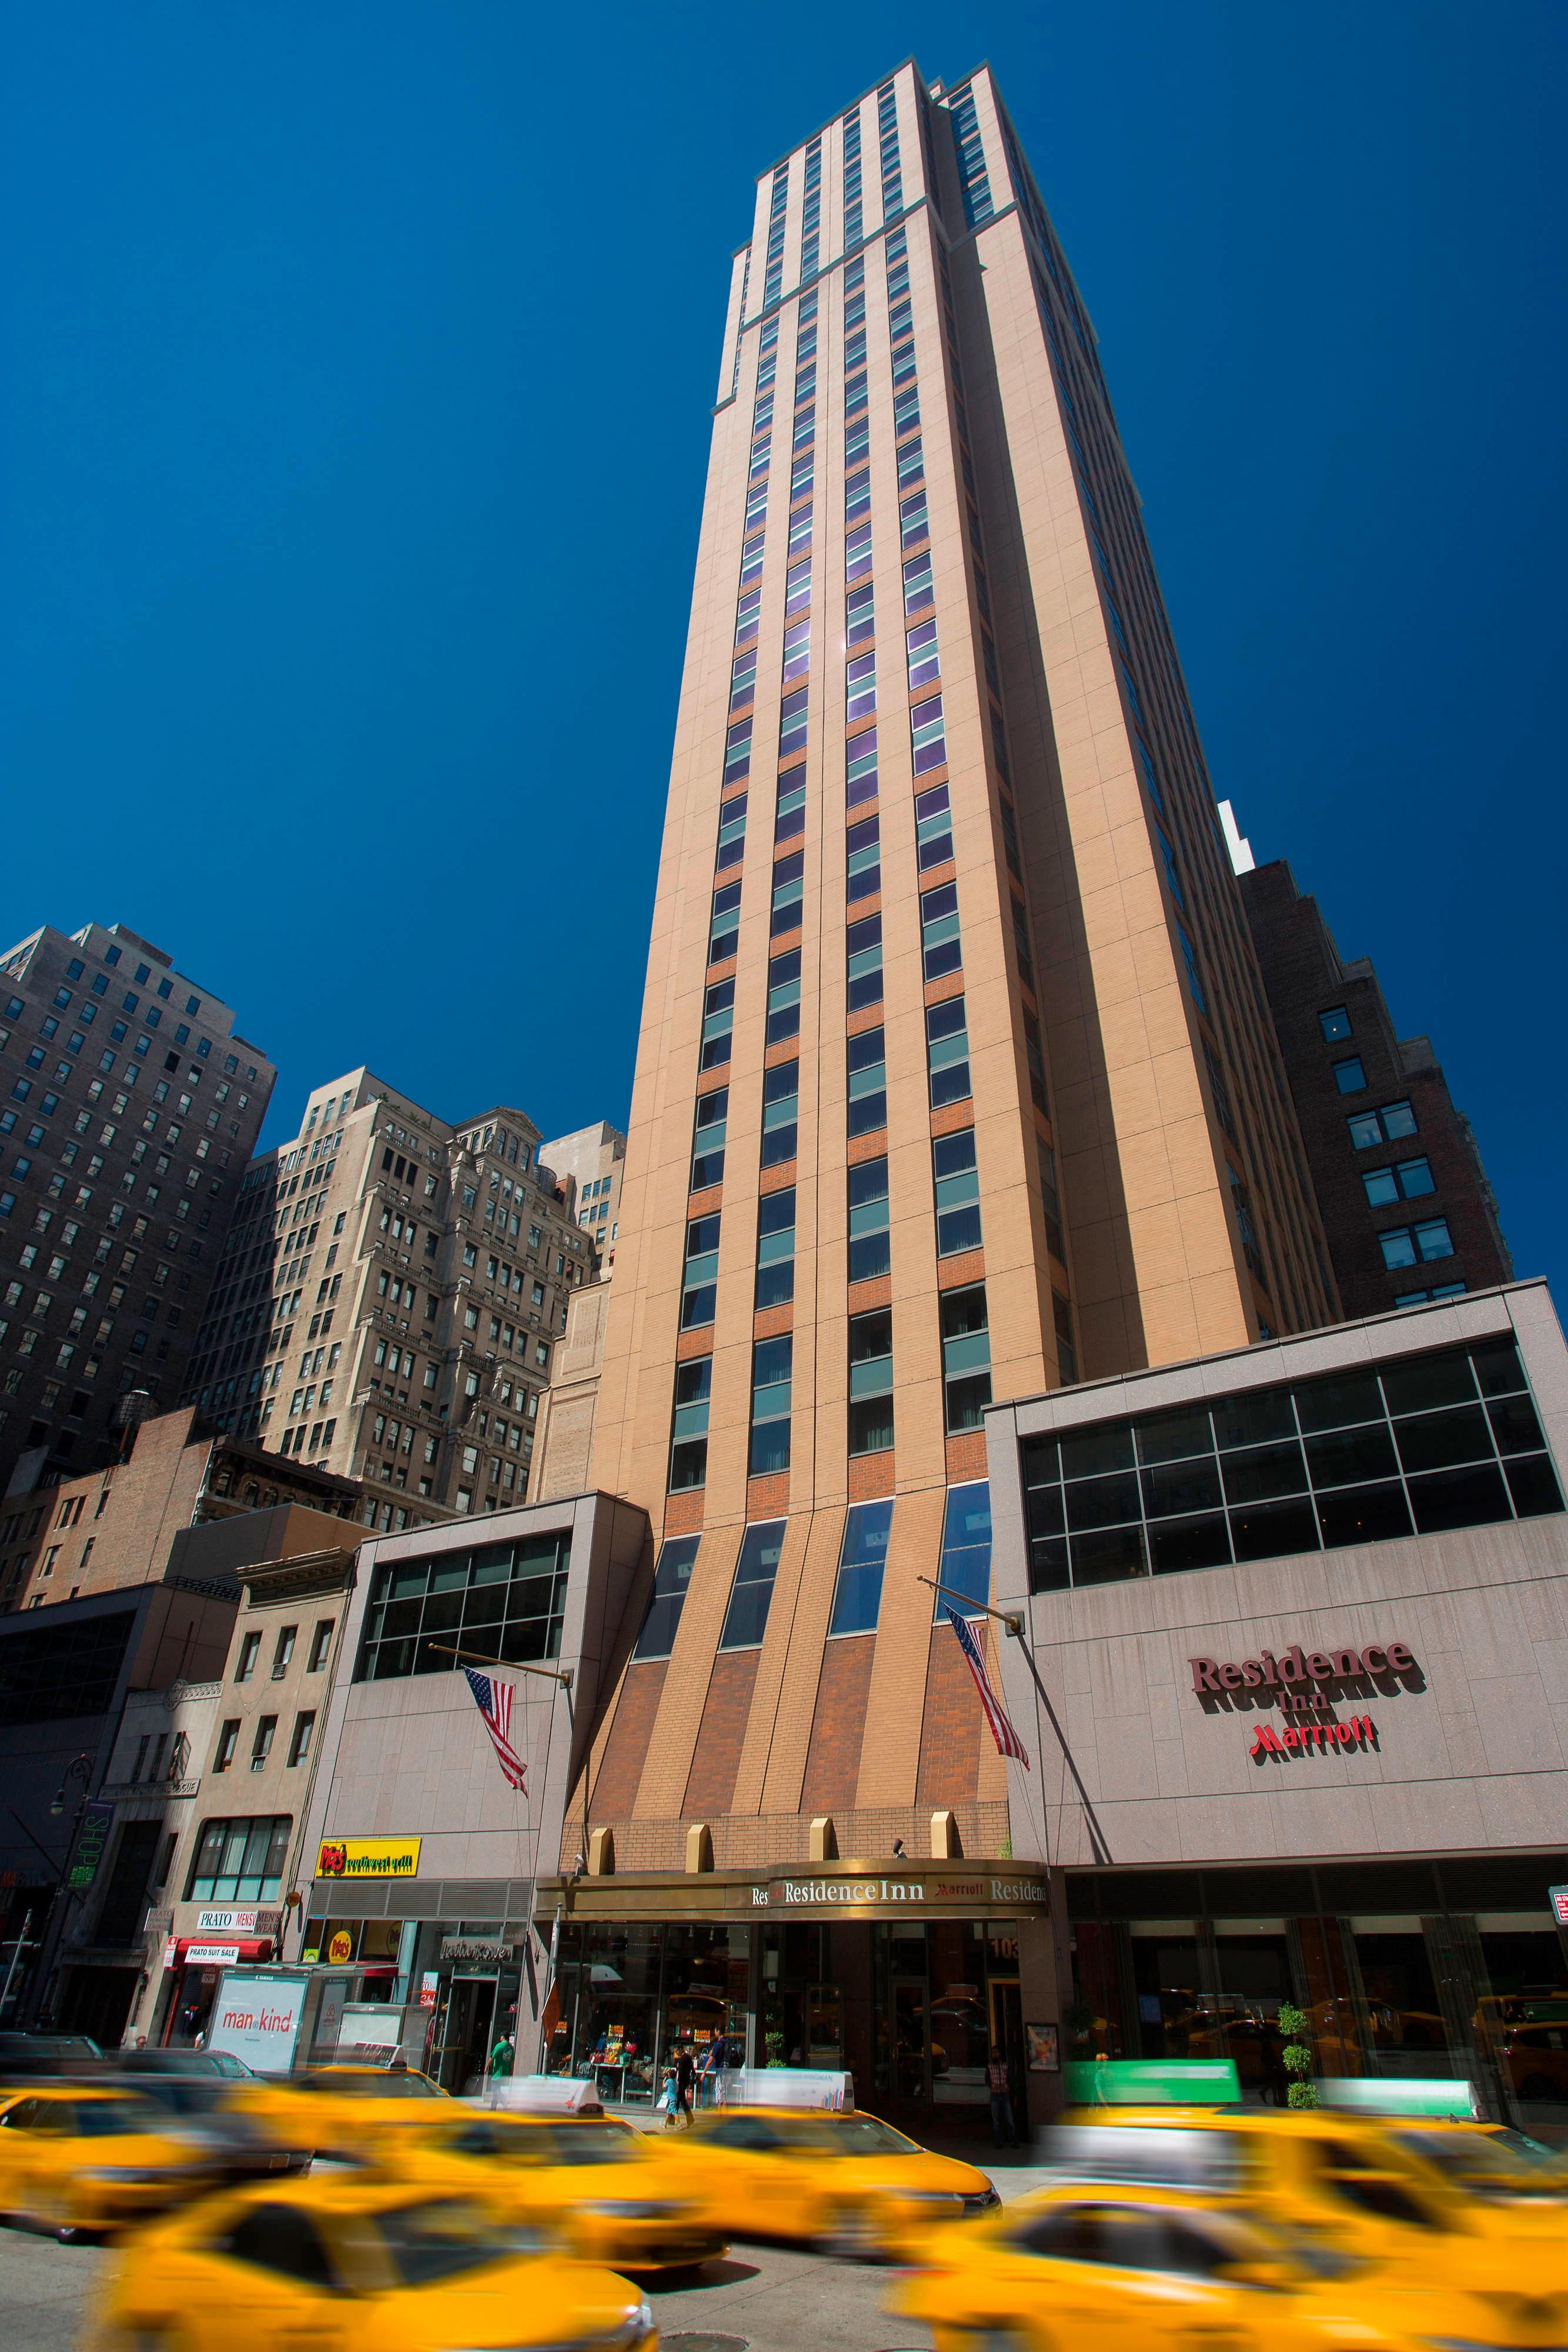 Exterior of Residence Inn Times Square